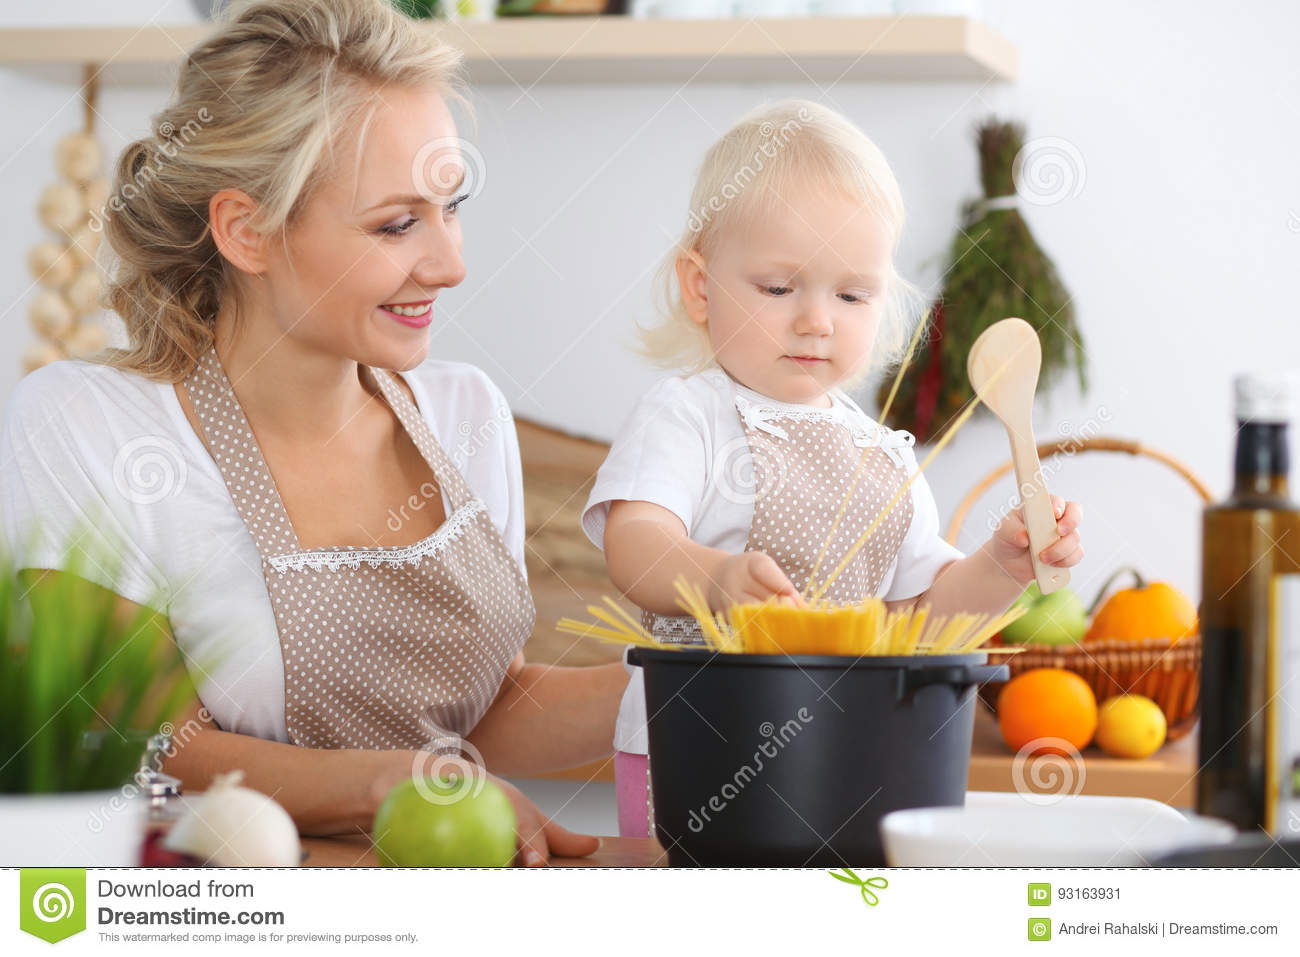 Happy family in kitchen - Happy Family In The Kitchen Mother And Child Daughter Cooking Pasta Stock Photo